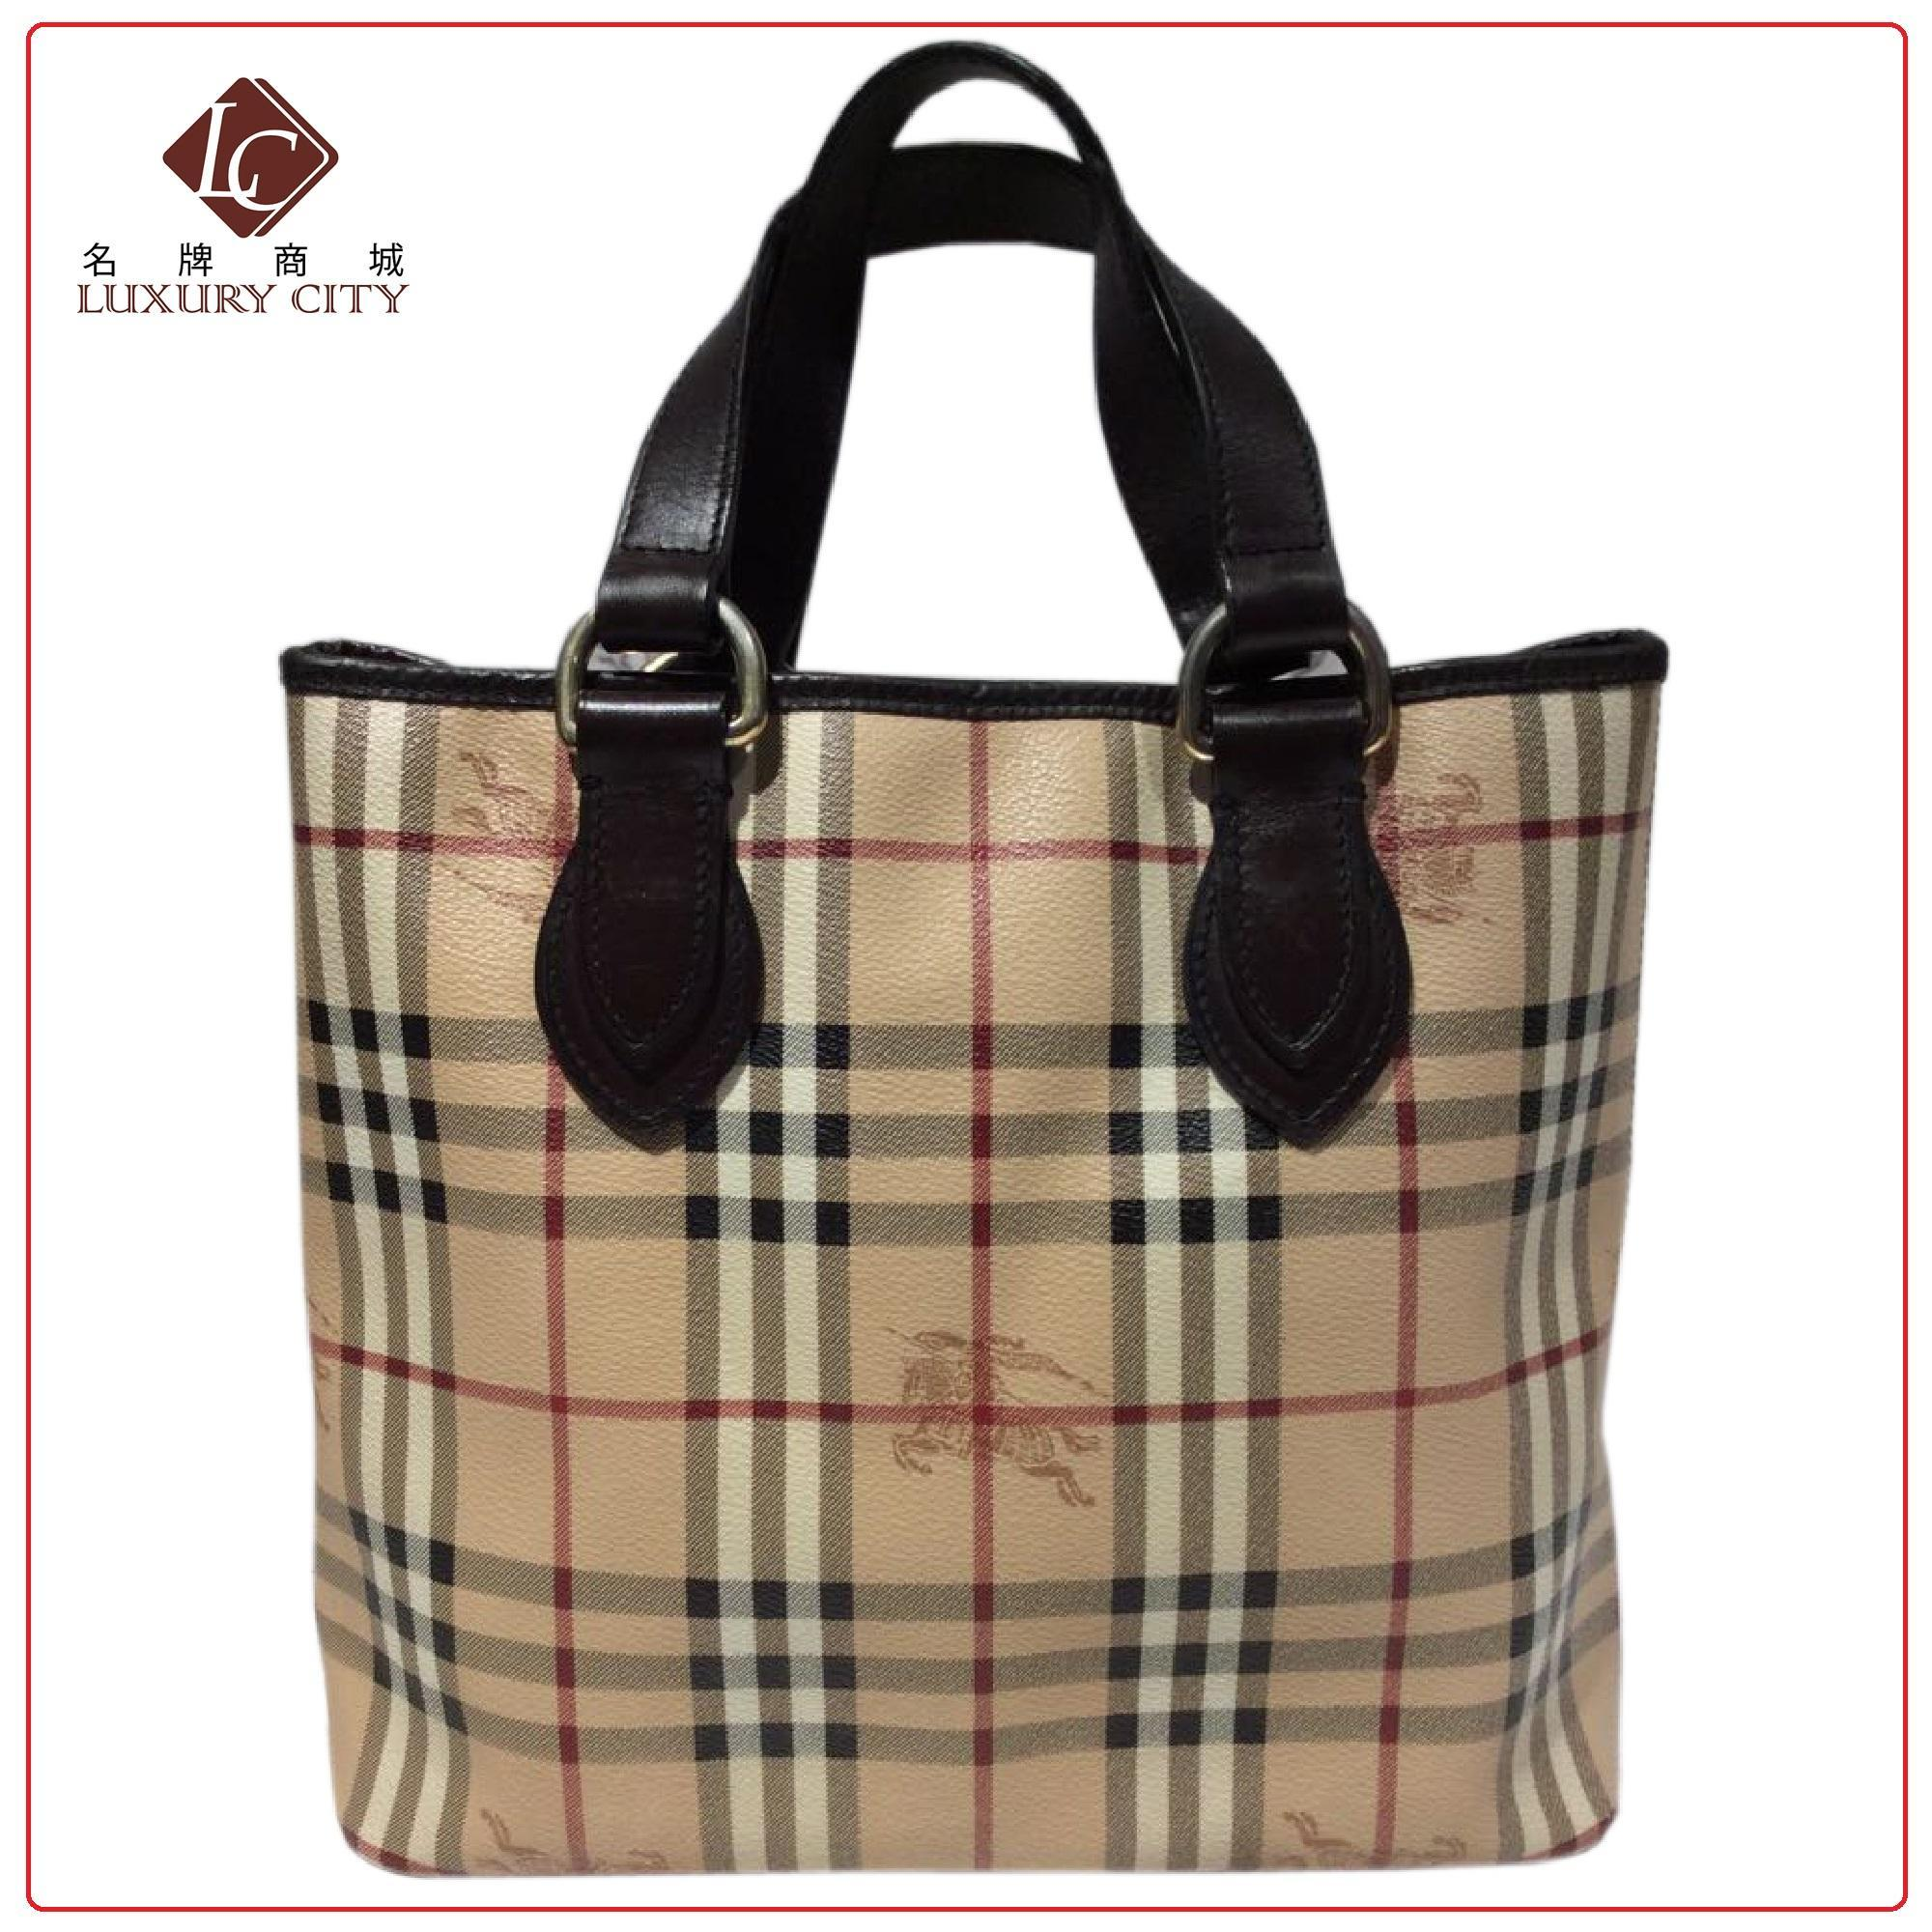 Authentic Burberry Handbag Women S